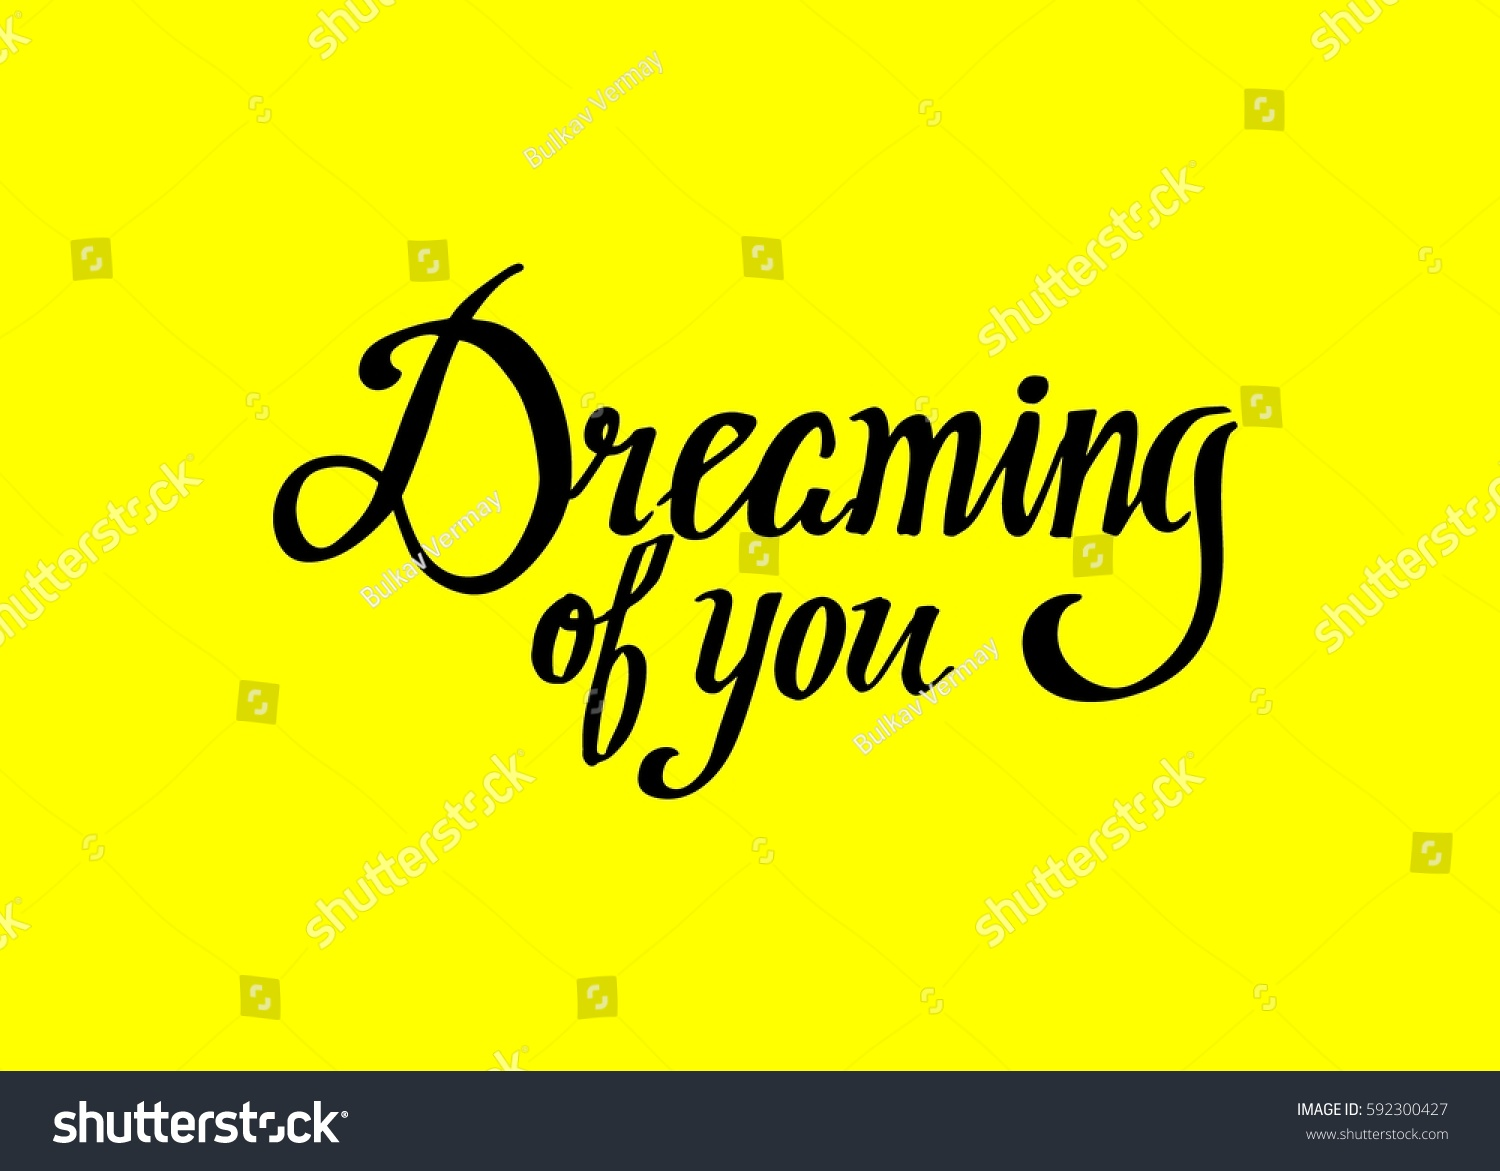 Dreaming you hand lettered quote modern stock vector